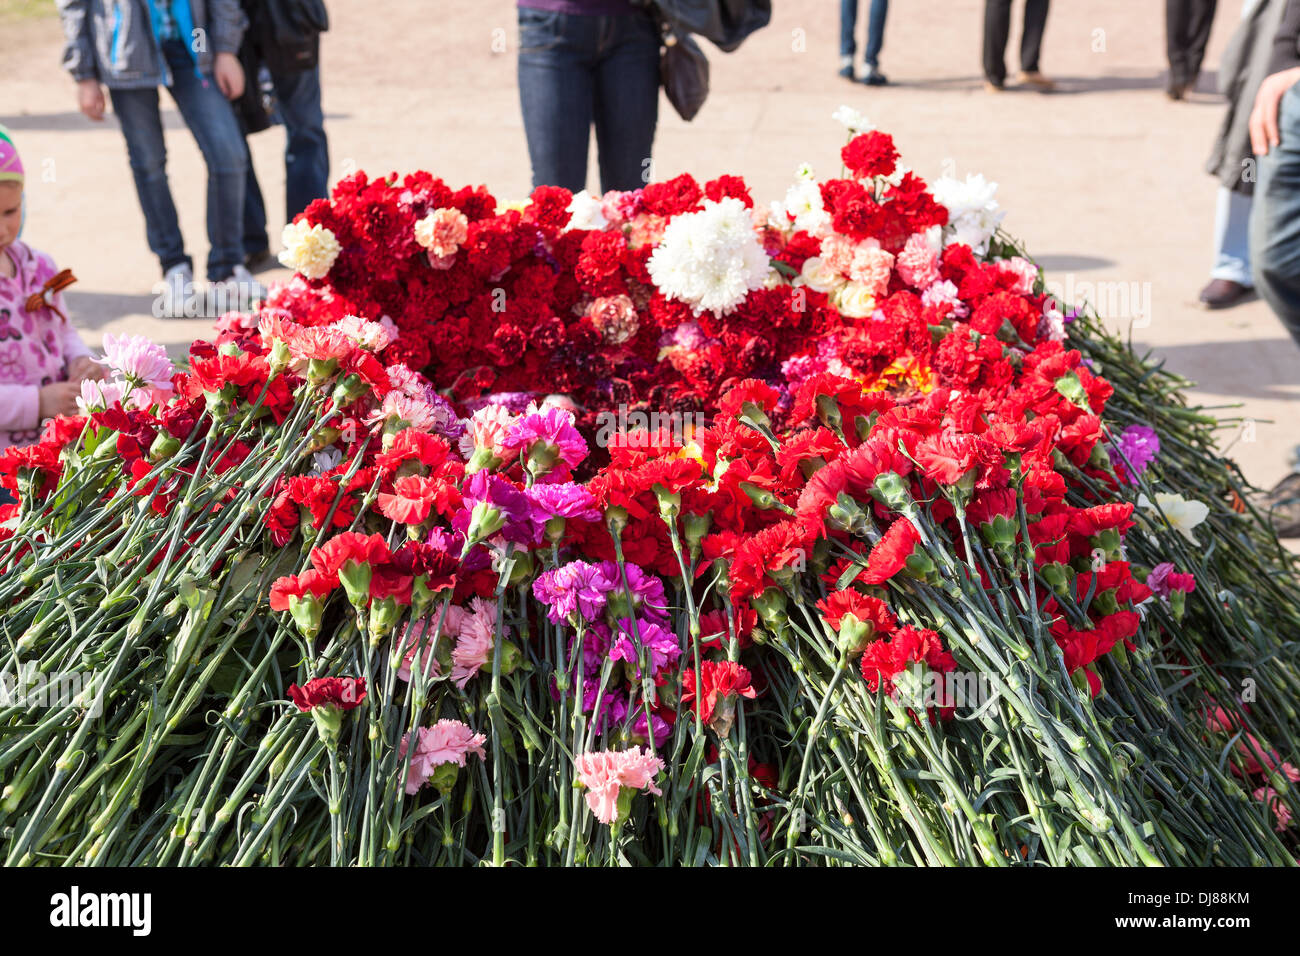 Red carnations around the eternal flame at the Champ de Mars in St. Petersburg. Russia. Victory Day, May 9. Close up - Stock Image